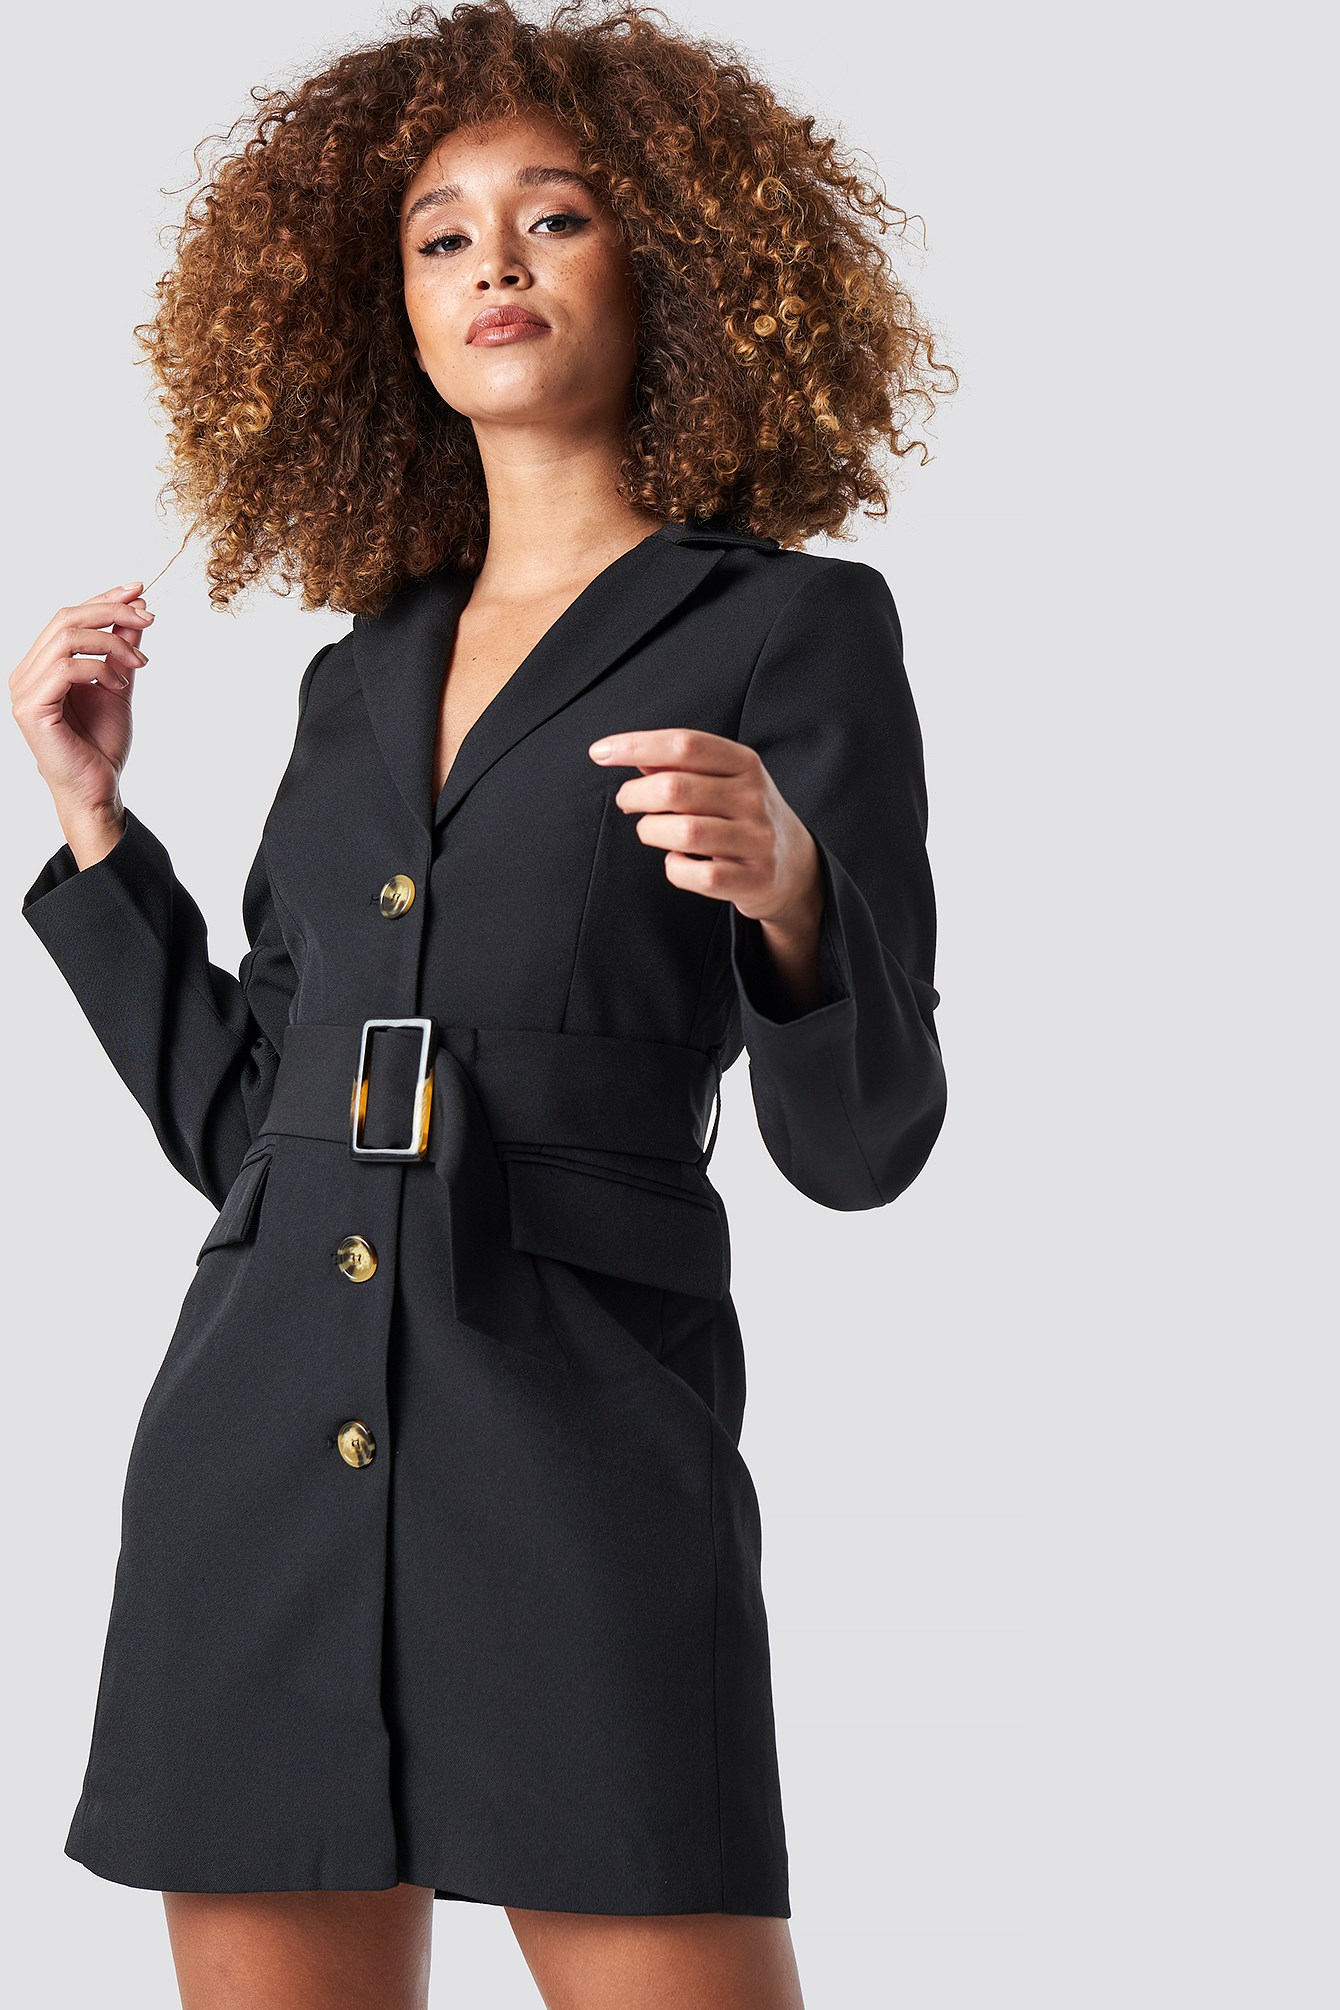 Robe Blazer Ceinture Large Noir Statement by NA-KD Influencers